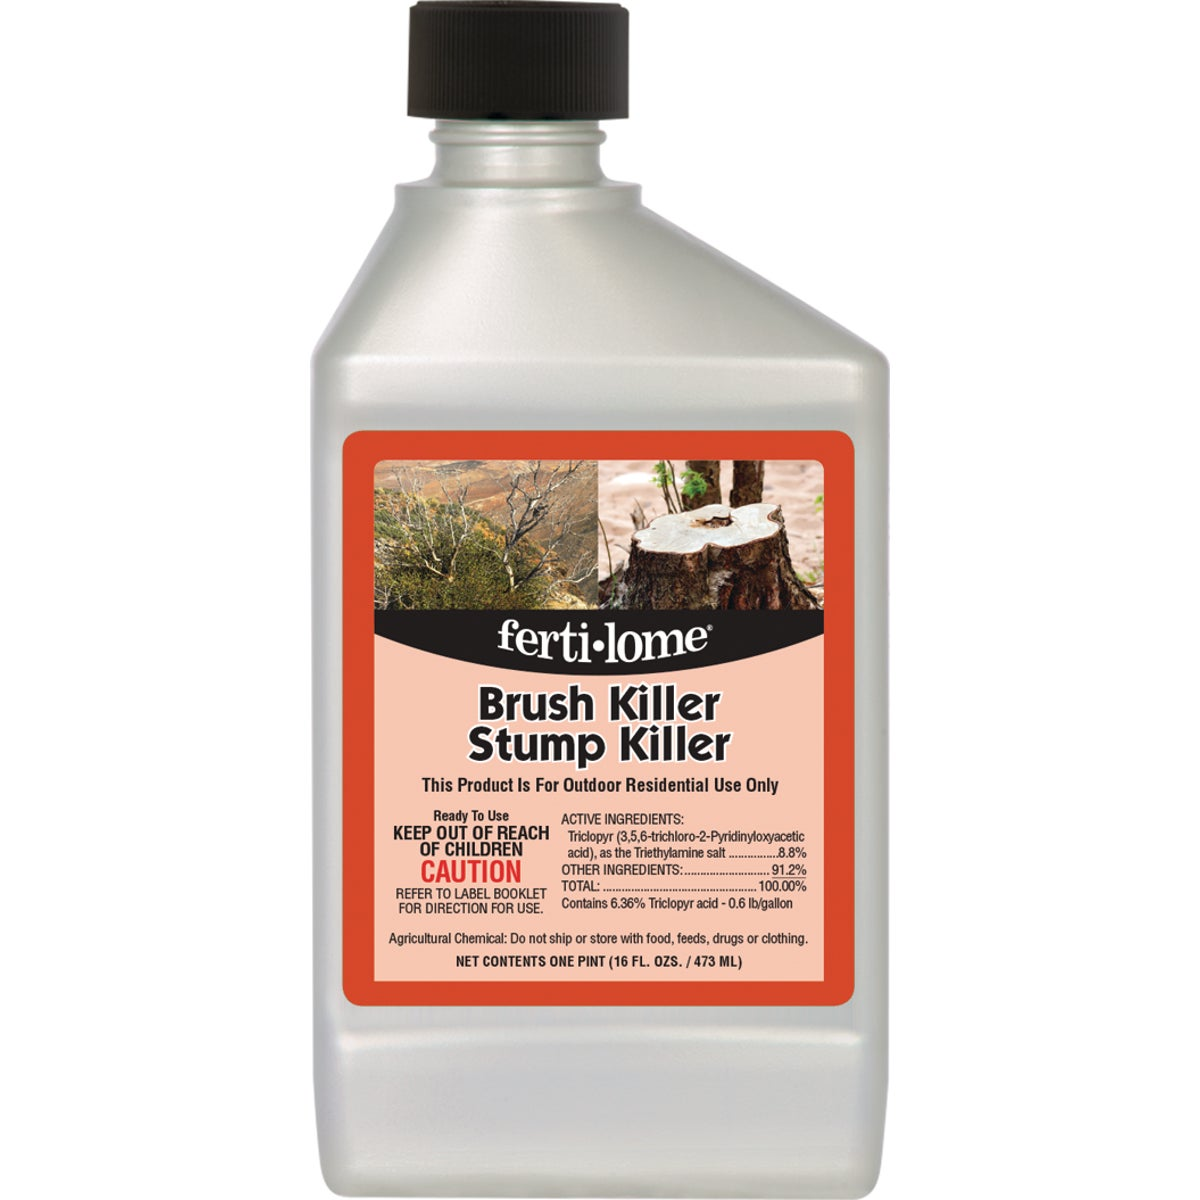 16OZ BRUSH&STUMP KILLER - 11484 by Vpg Fertilome